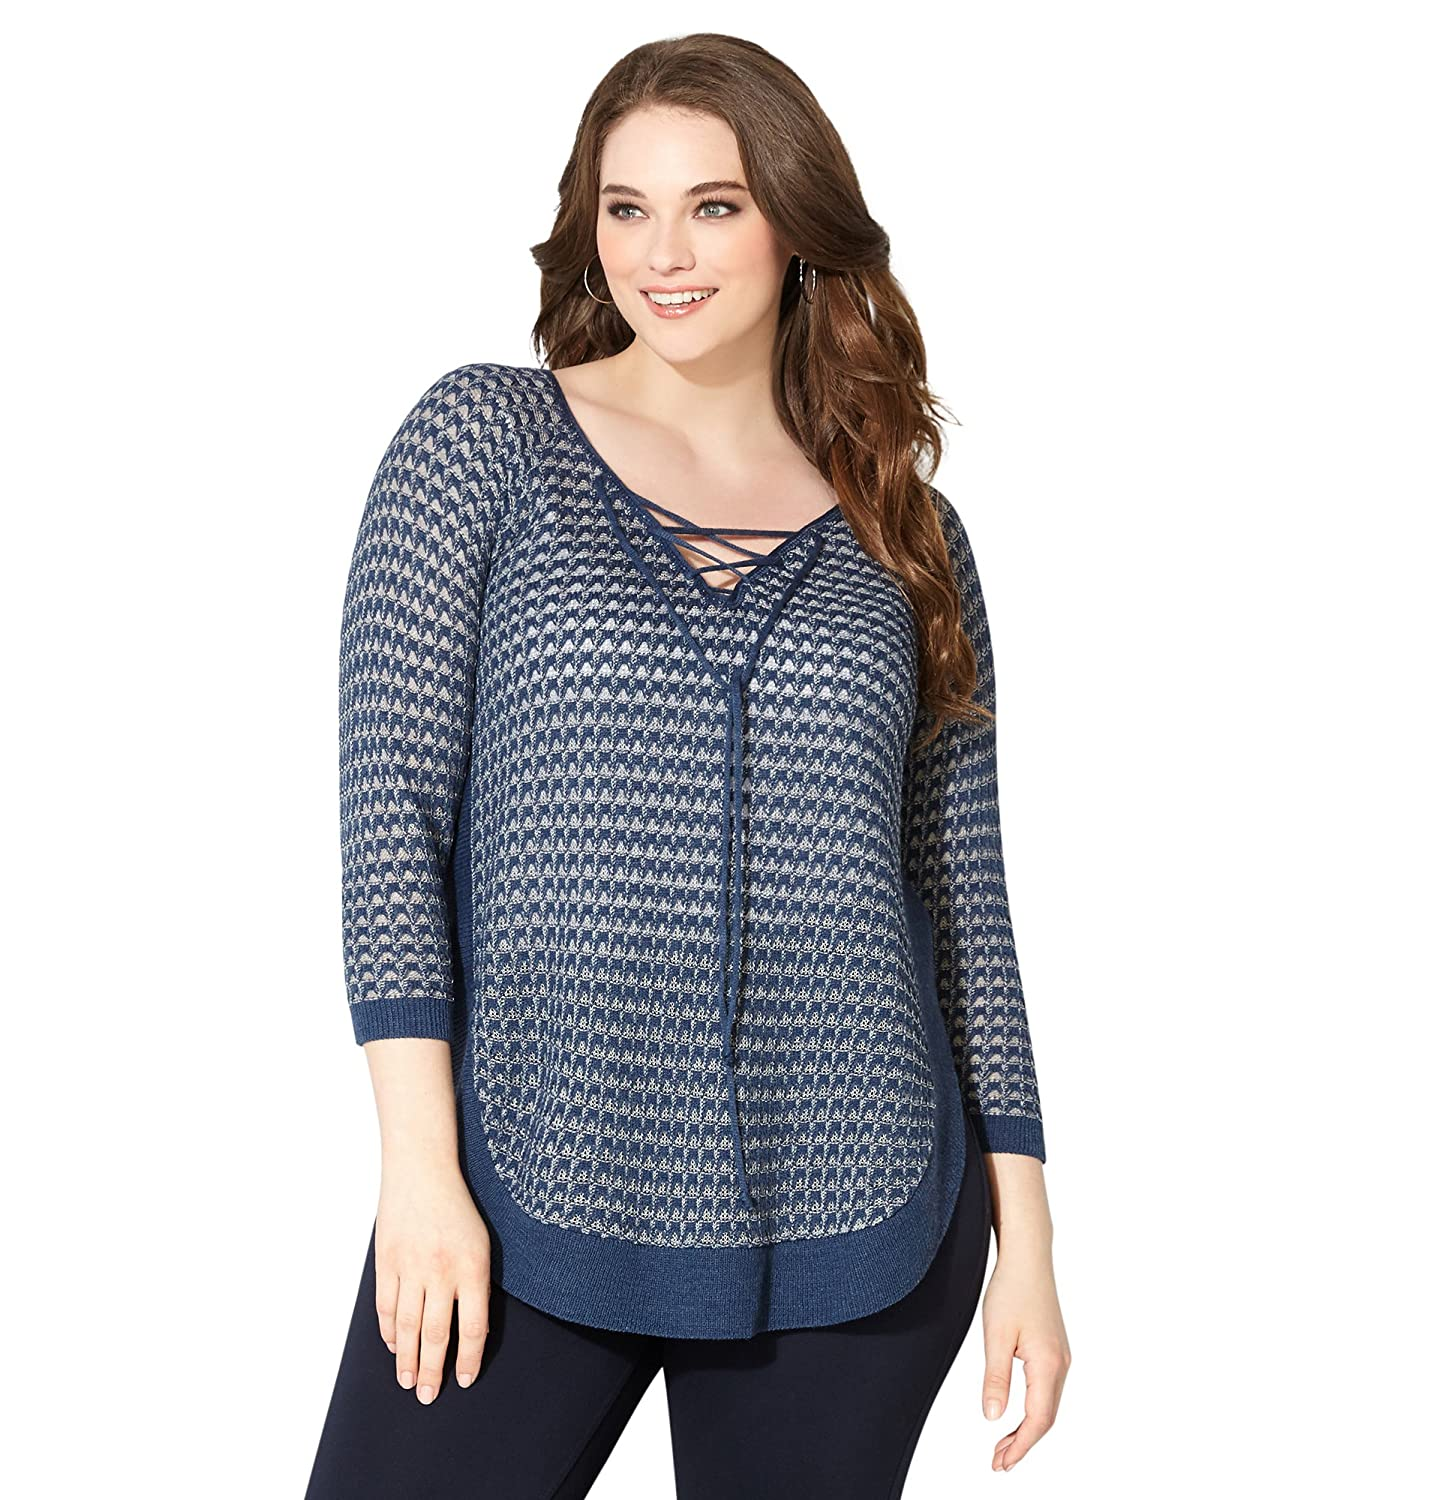 AVENUE Women's Lace-Up Textured Pullover